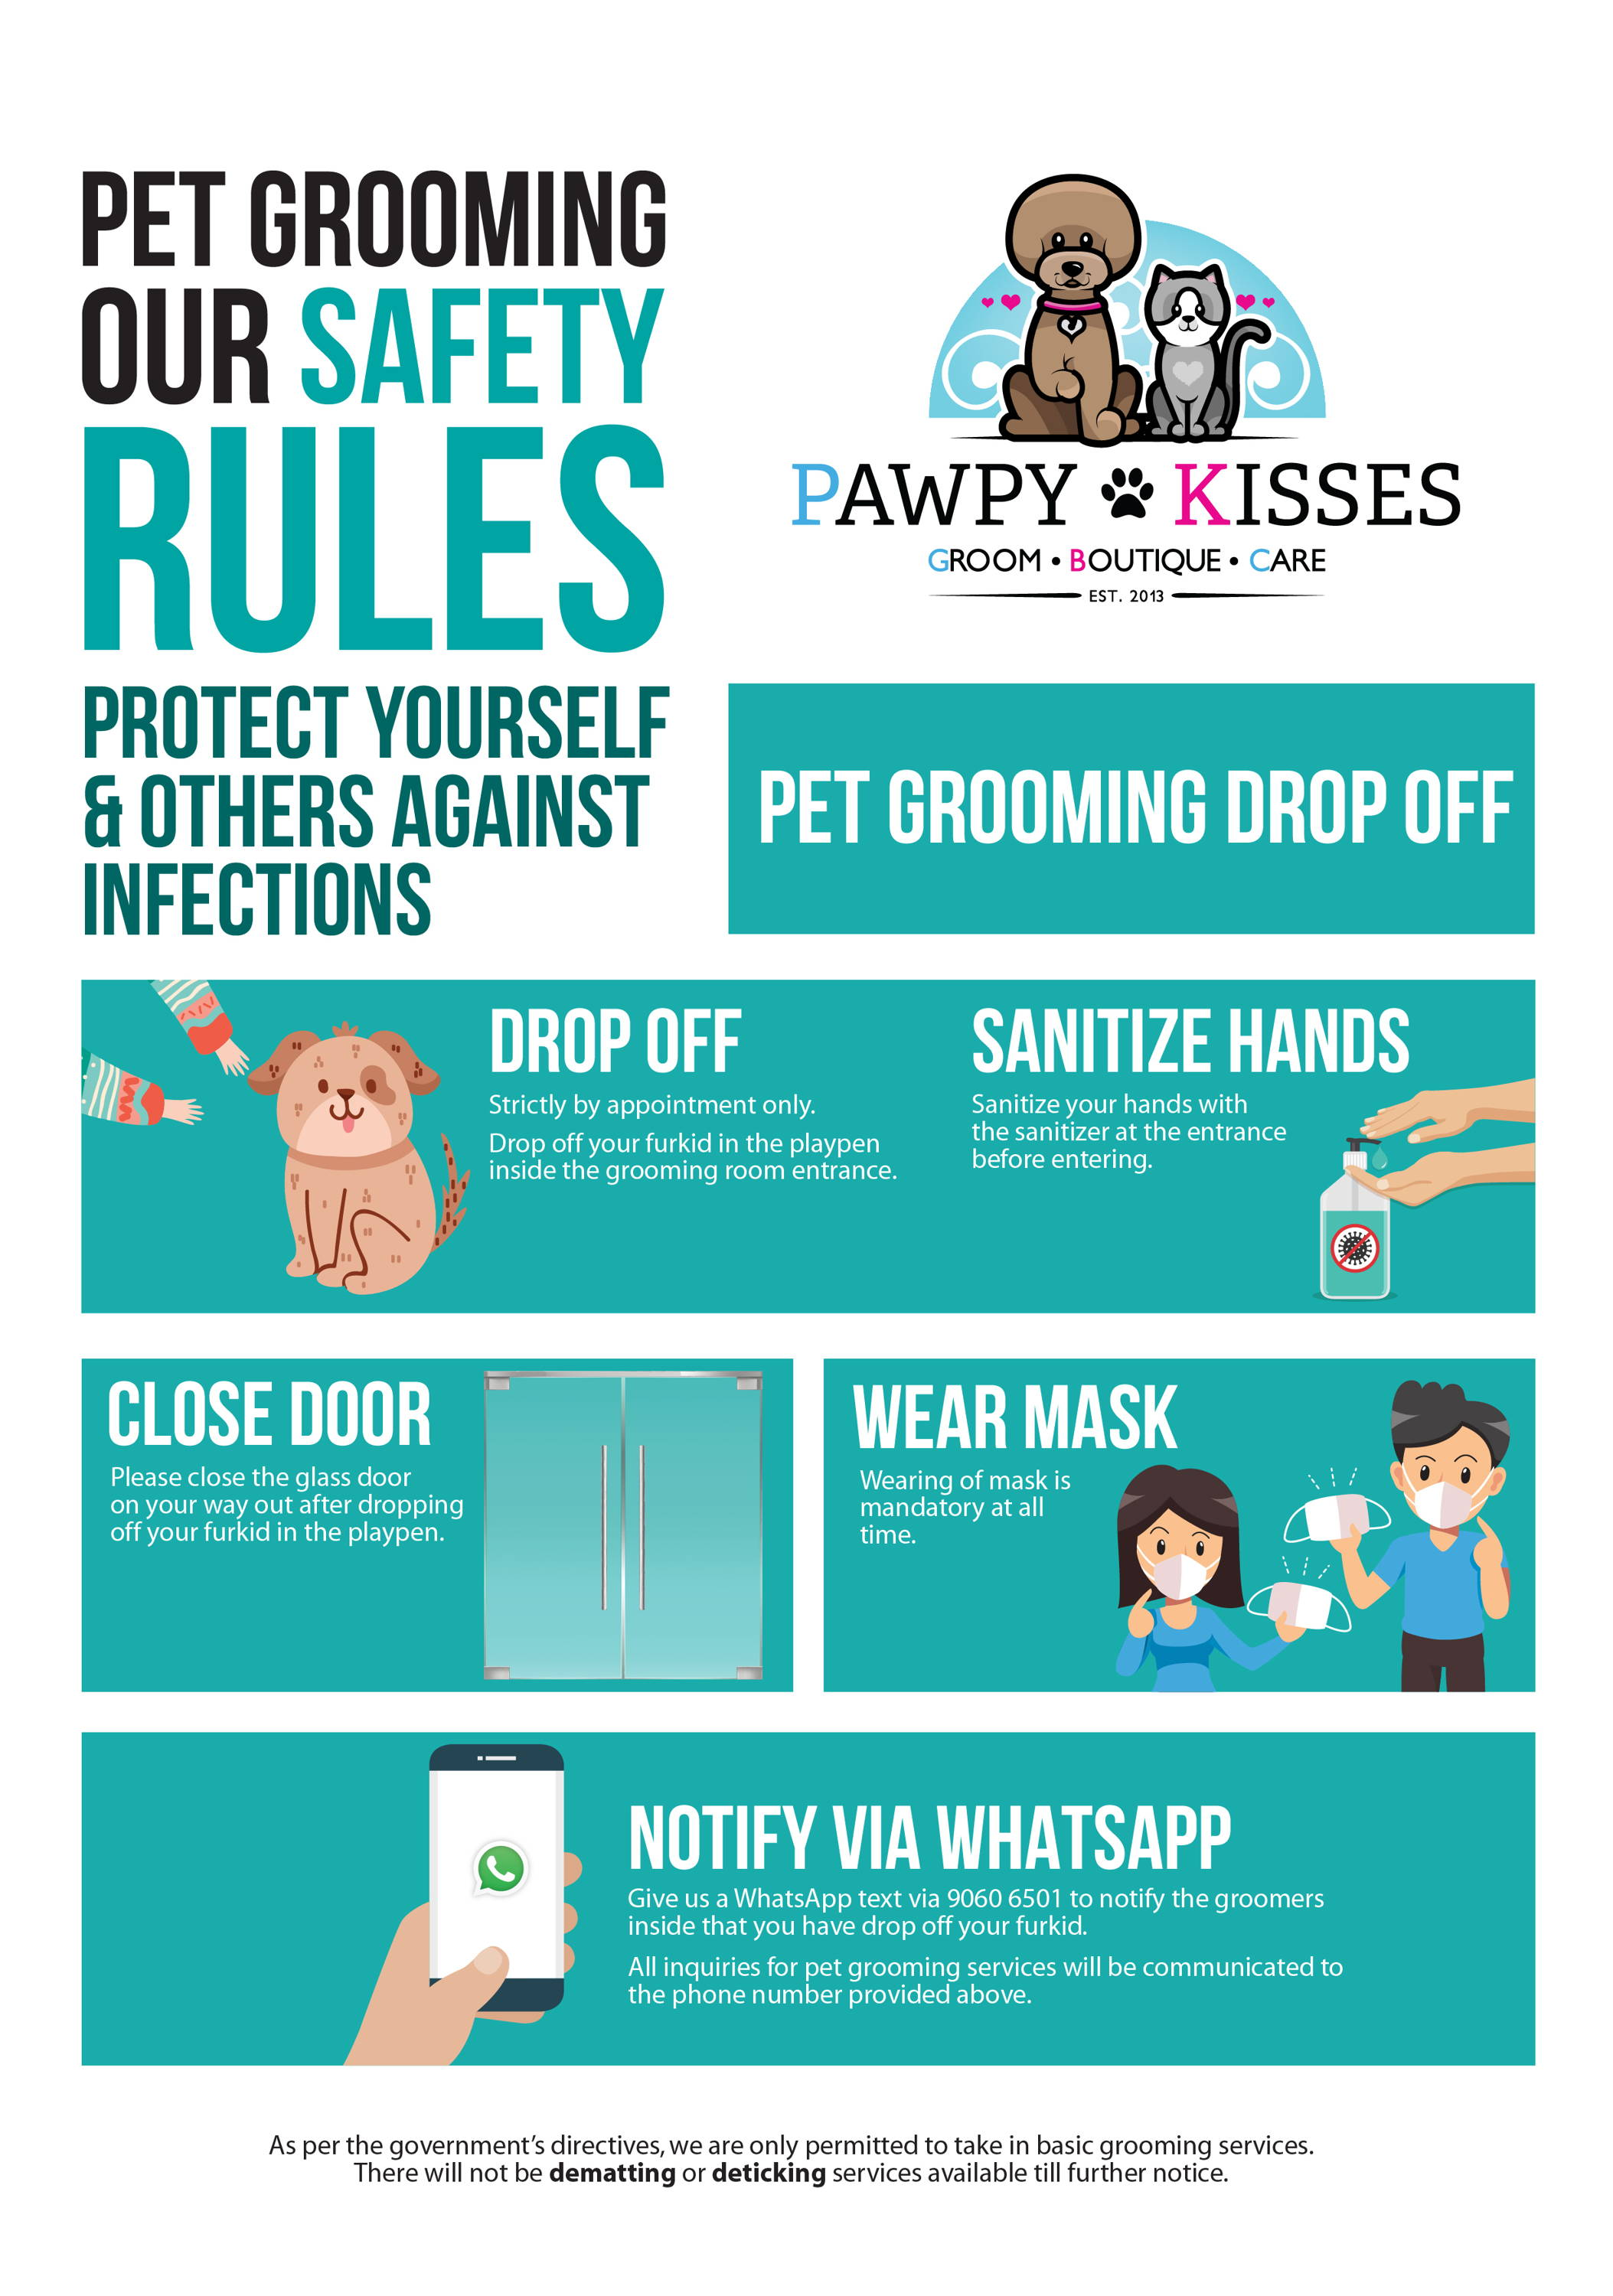 Basic Pet Grooming Services Resume in Post Circuit Breaker Phase 1